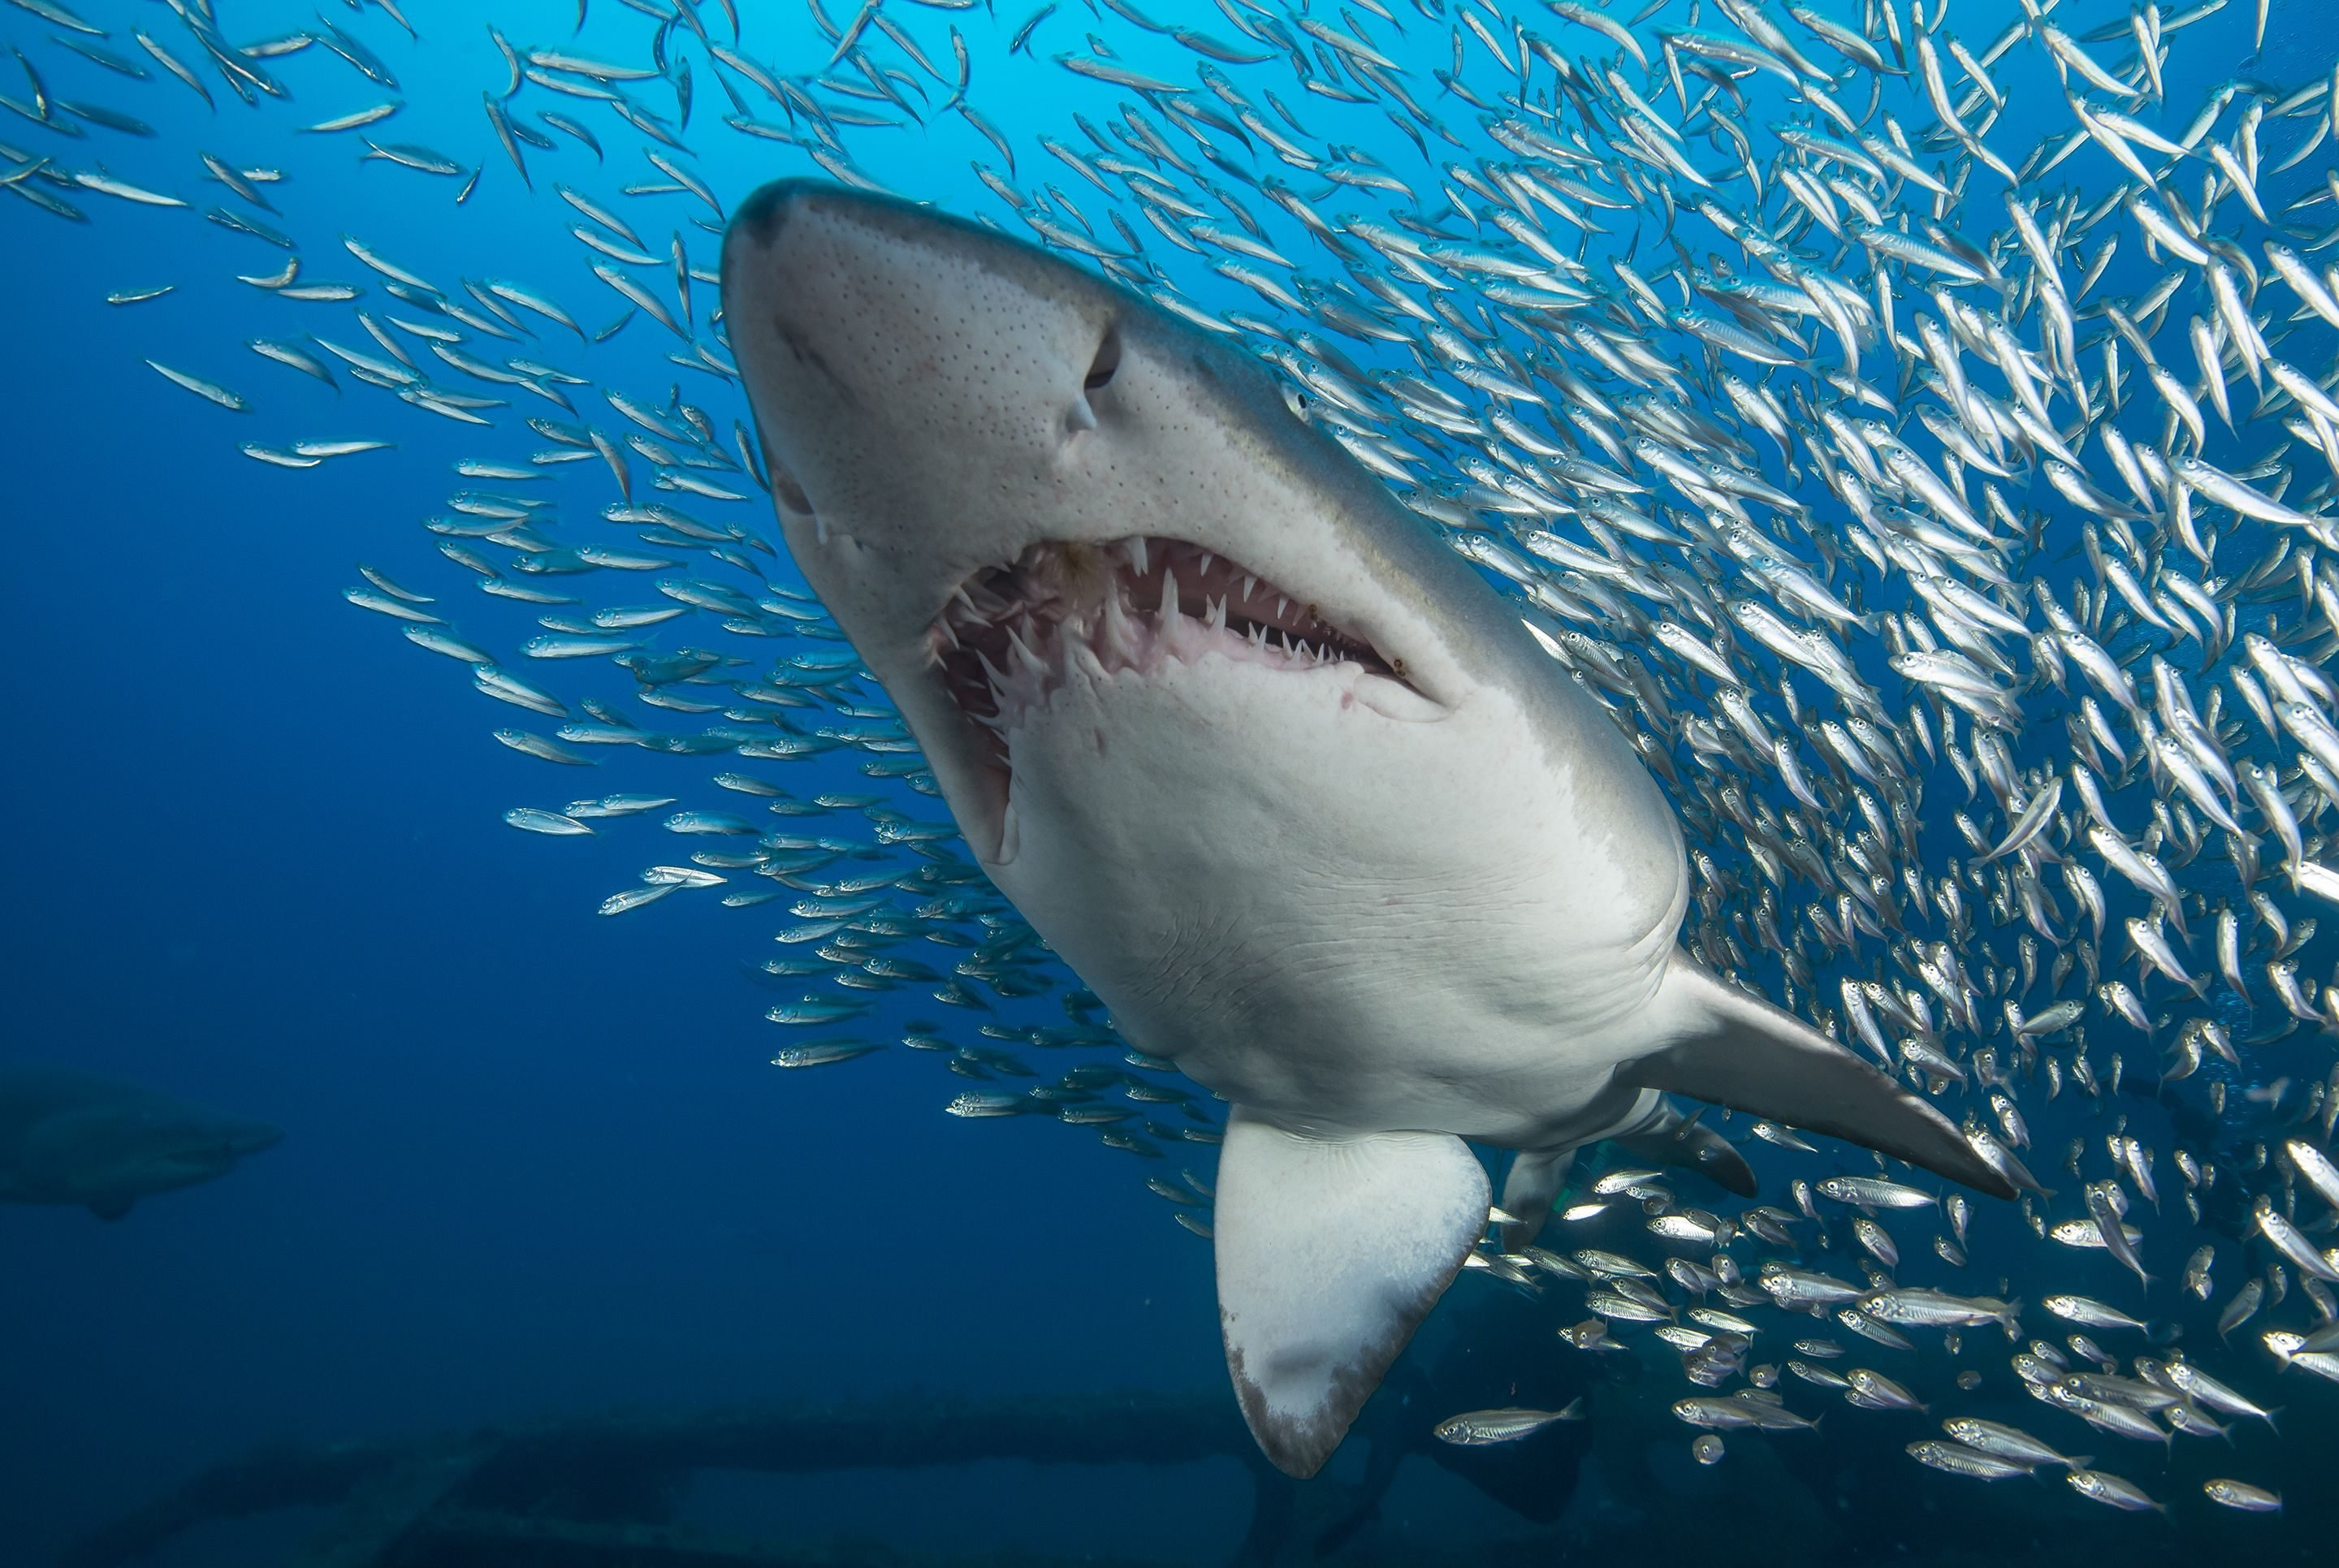 Misconceptions about Sharks - Animal Sake